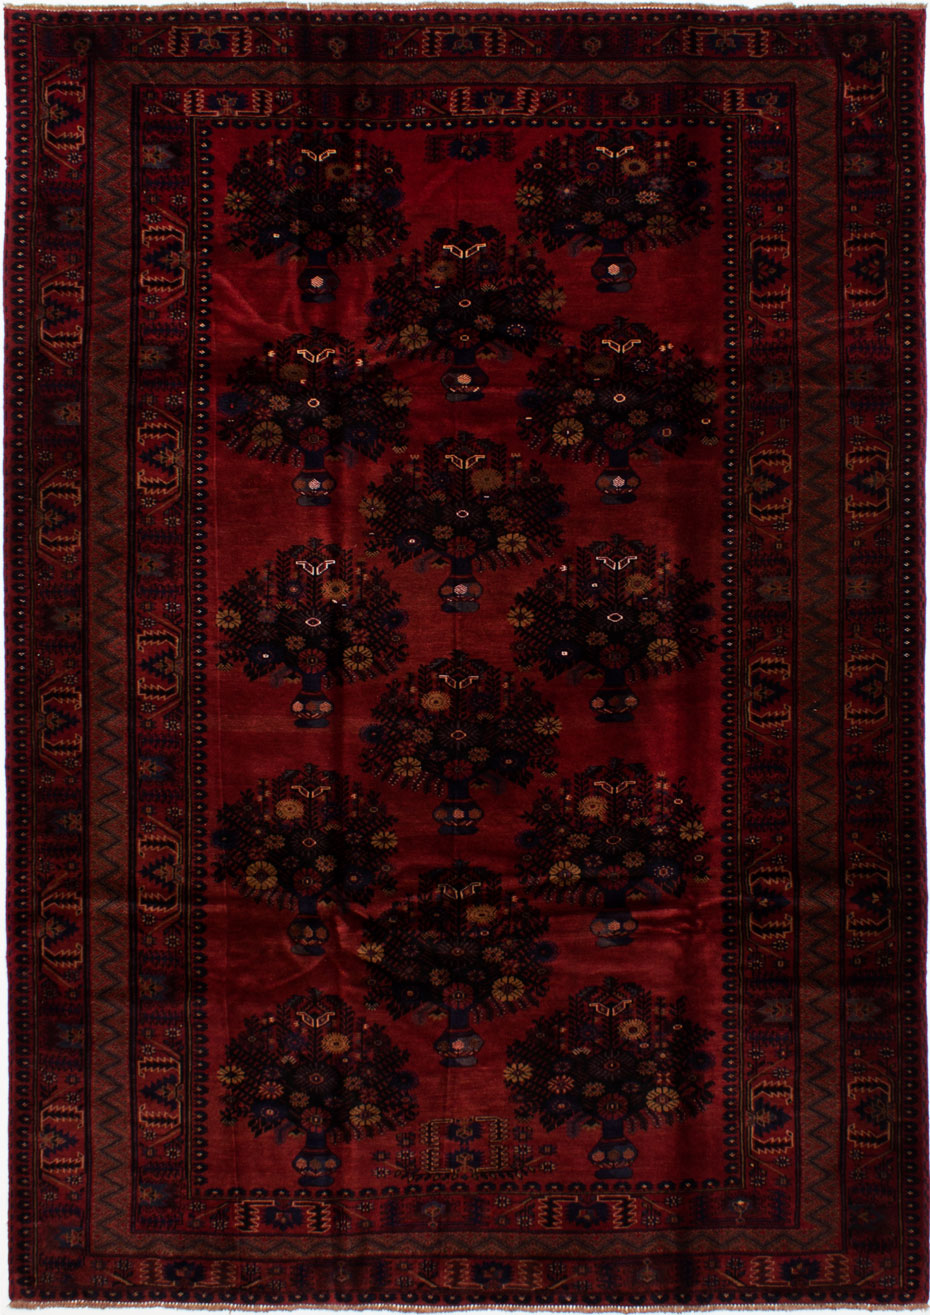 """Hand-knotted Finest Rizbaft Dark Red Wool Rug 6'10"""" x 9'7"""" Size: 6'10"""" x 9'7"""""""